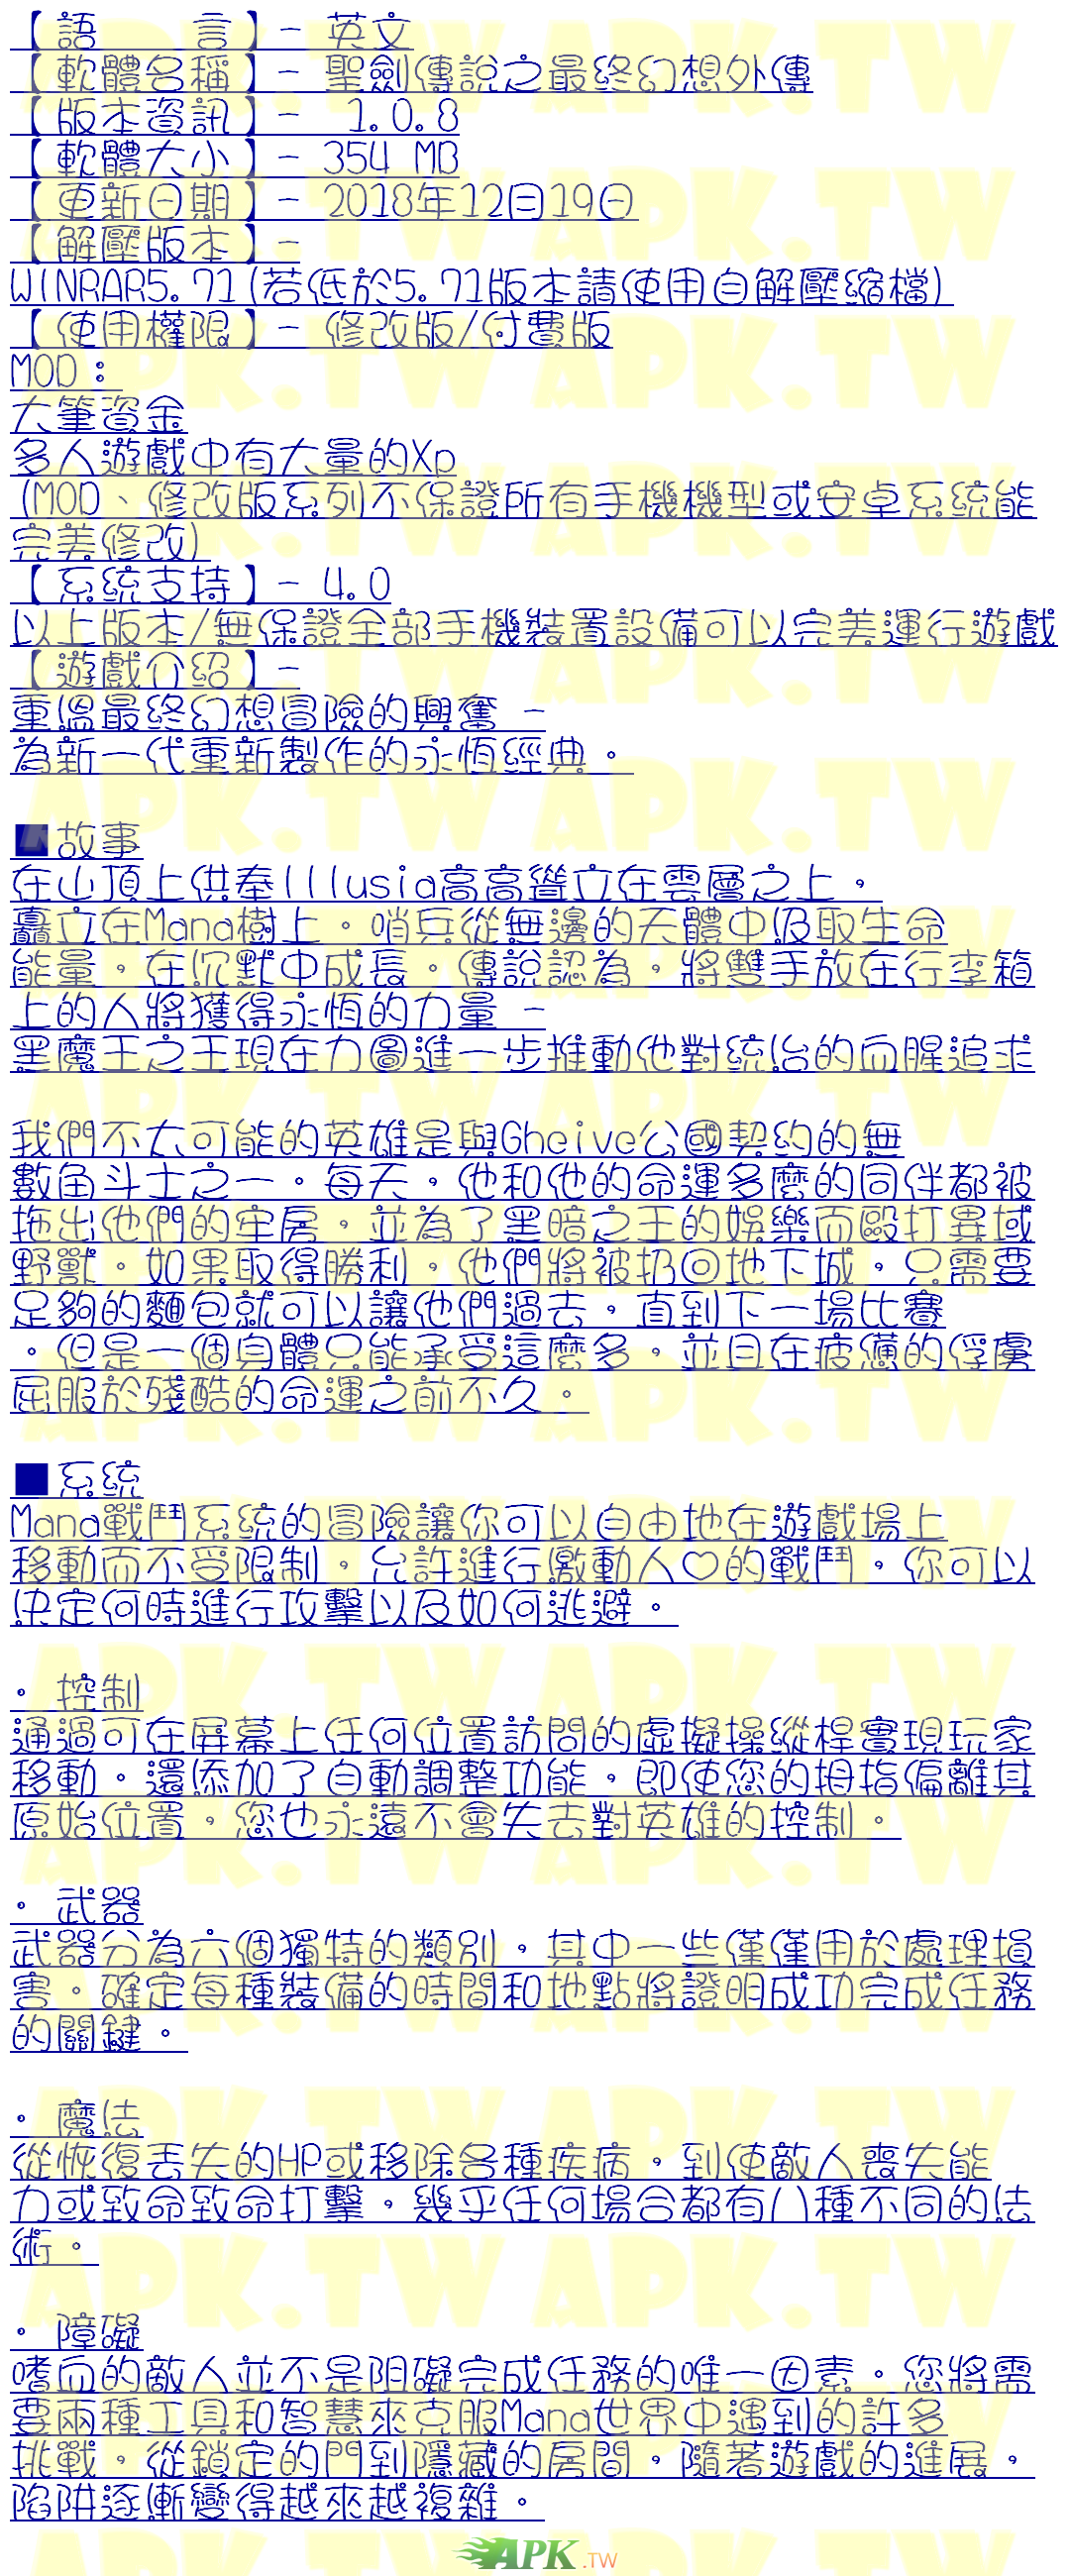 textimage1.png